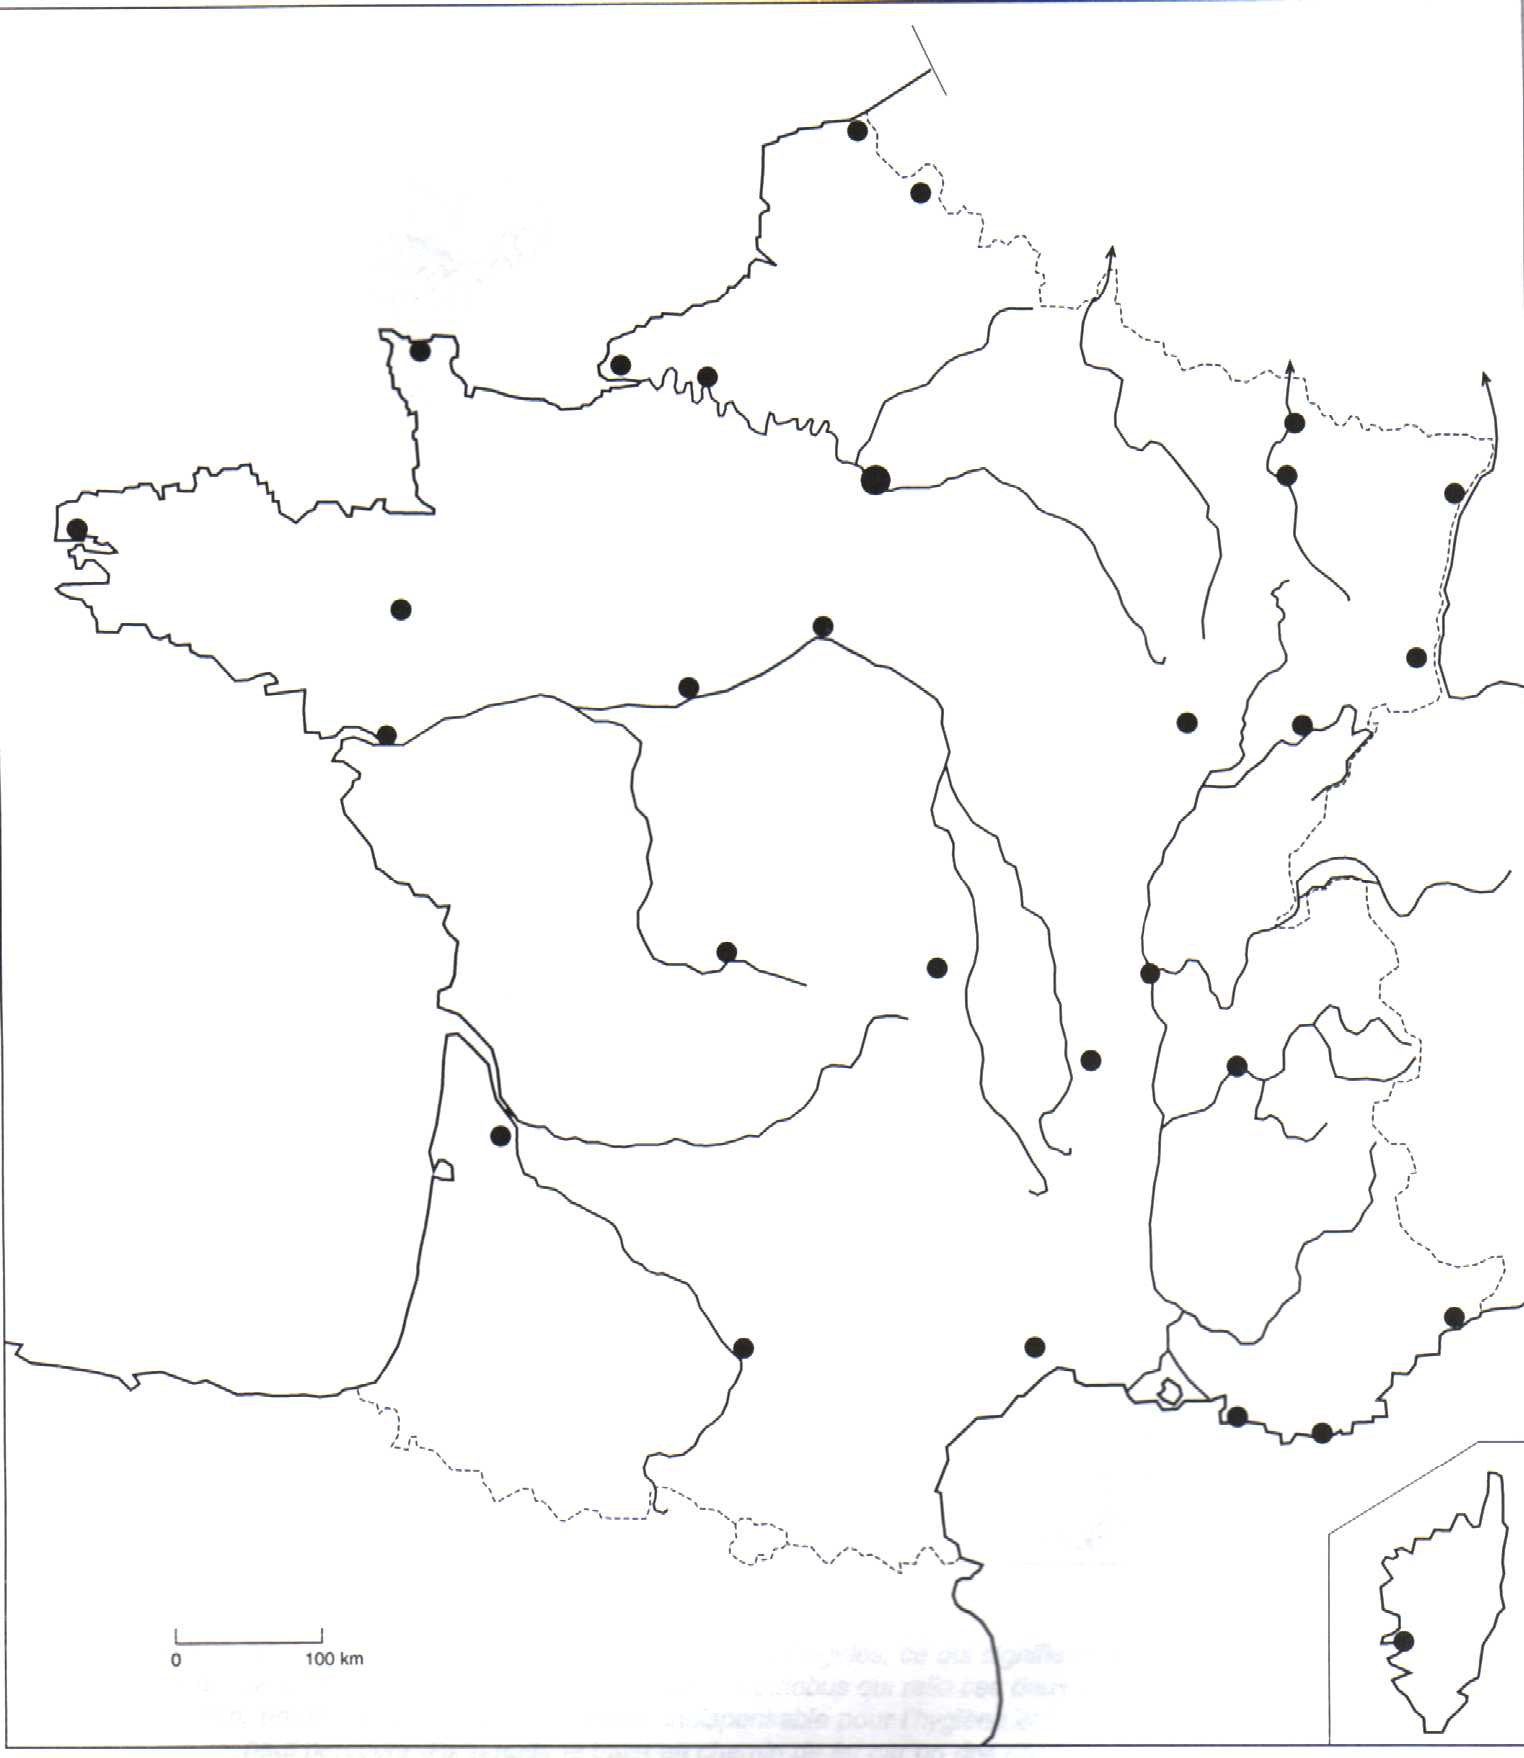 Fond De Carte De France tout Dessin De Carte De France